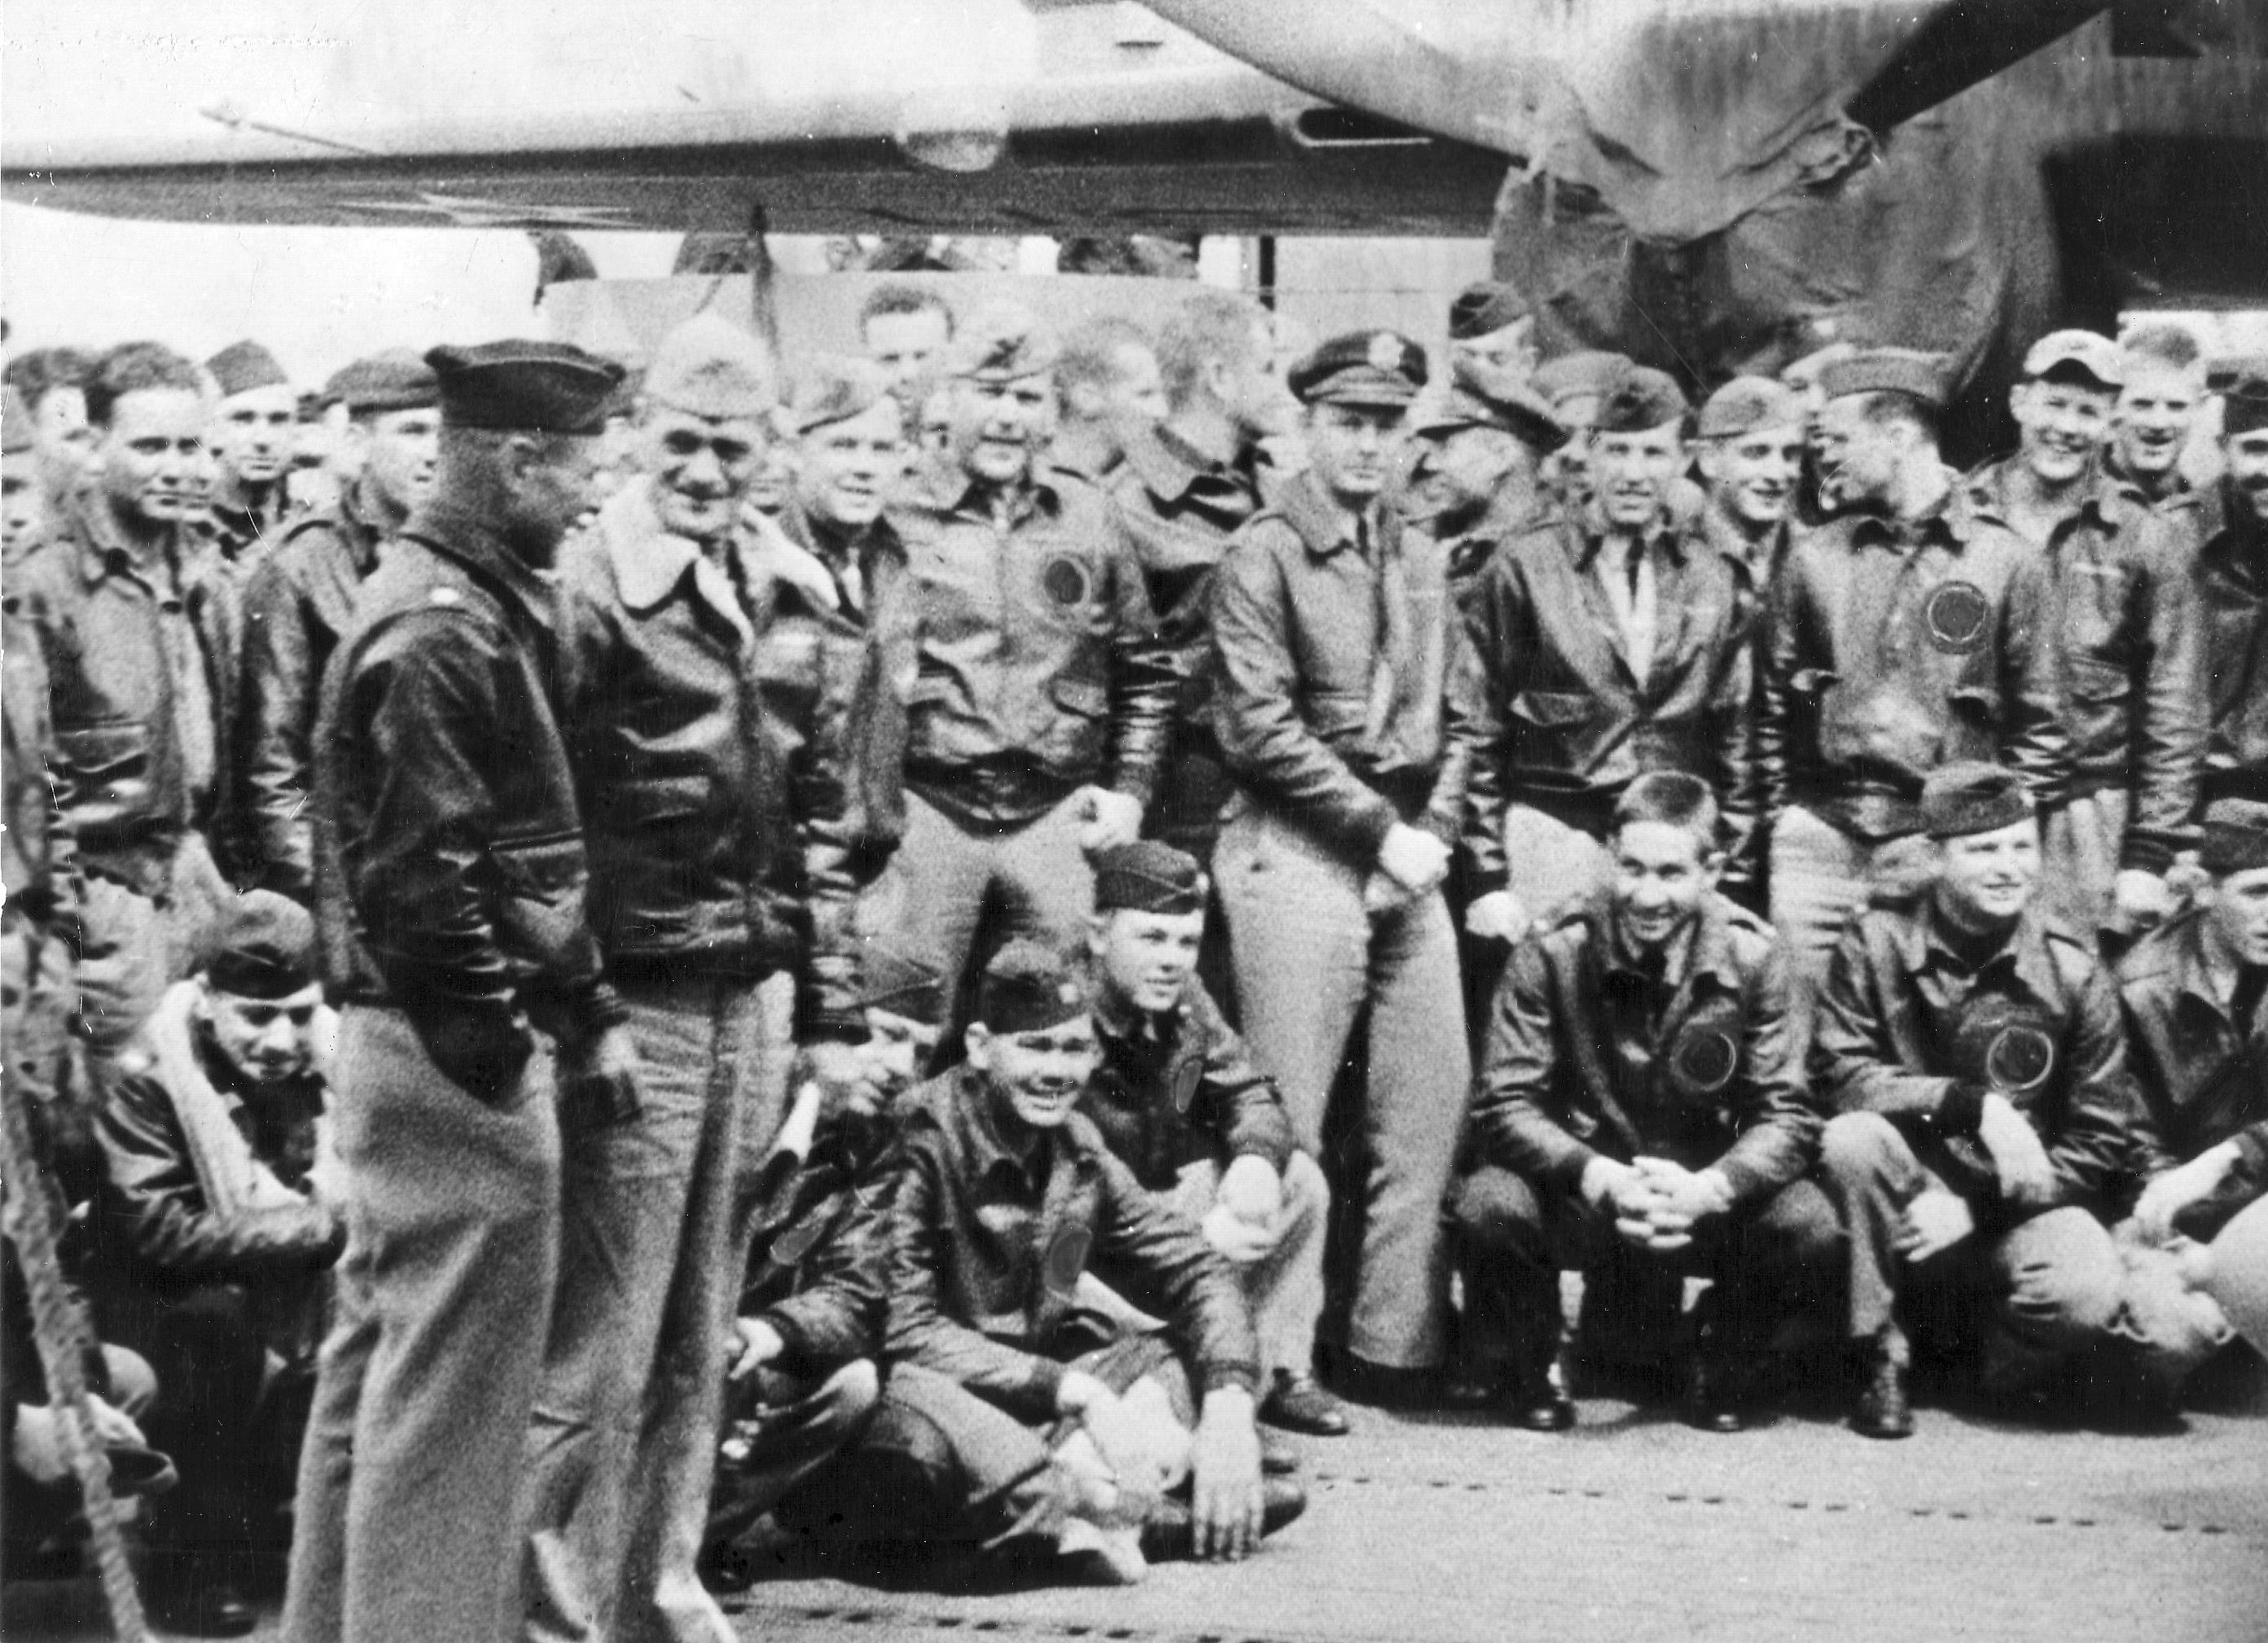 jewish single men in buffalo mills President obama said the valor of the army men — pvt henry  who was jewish — was receiving belated  he single-handedly held off the .